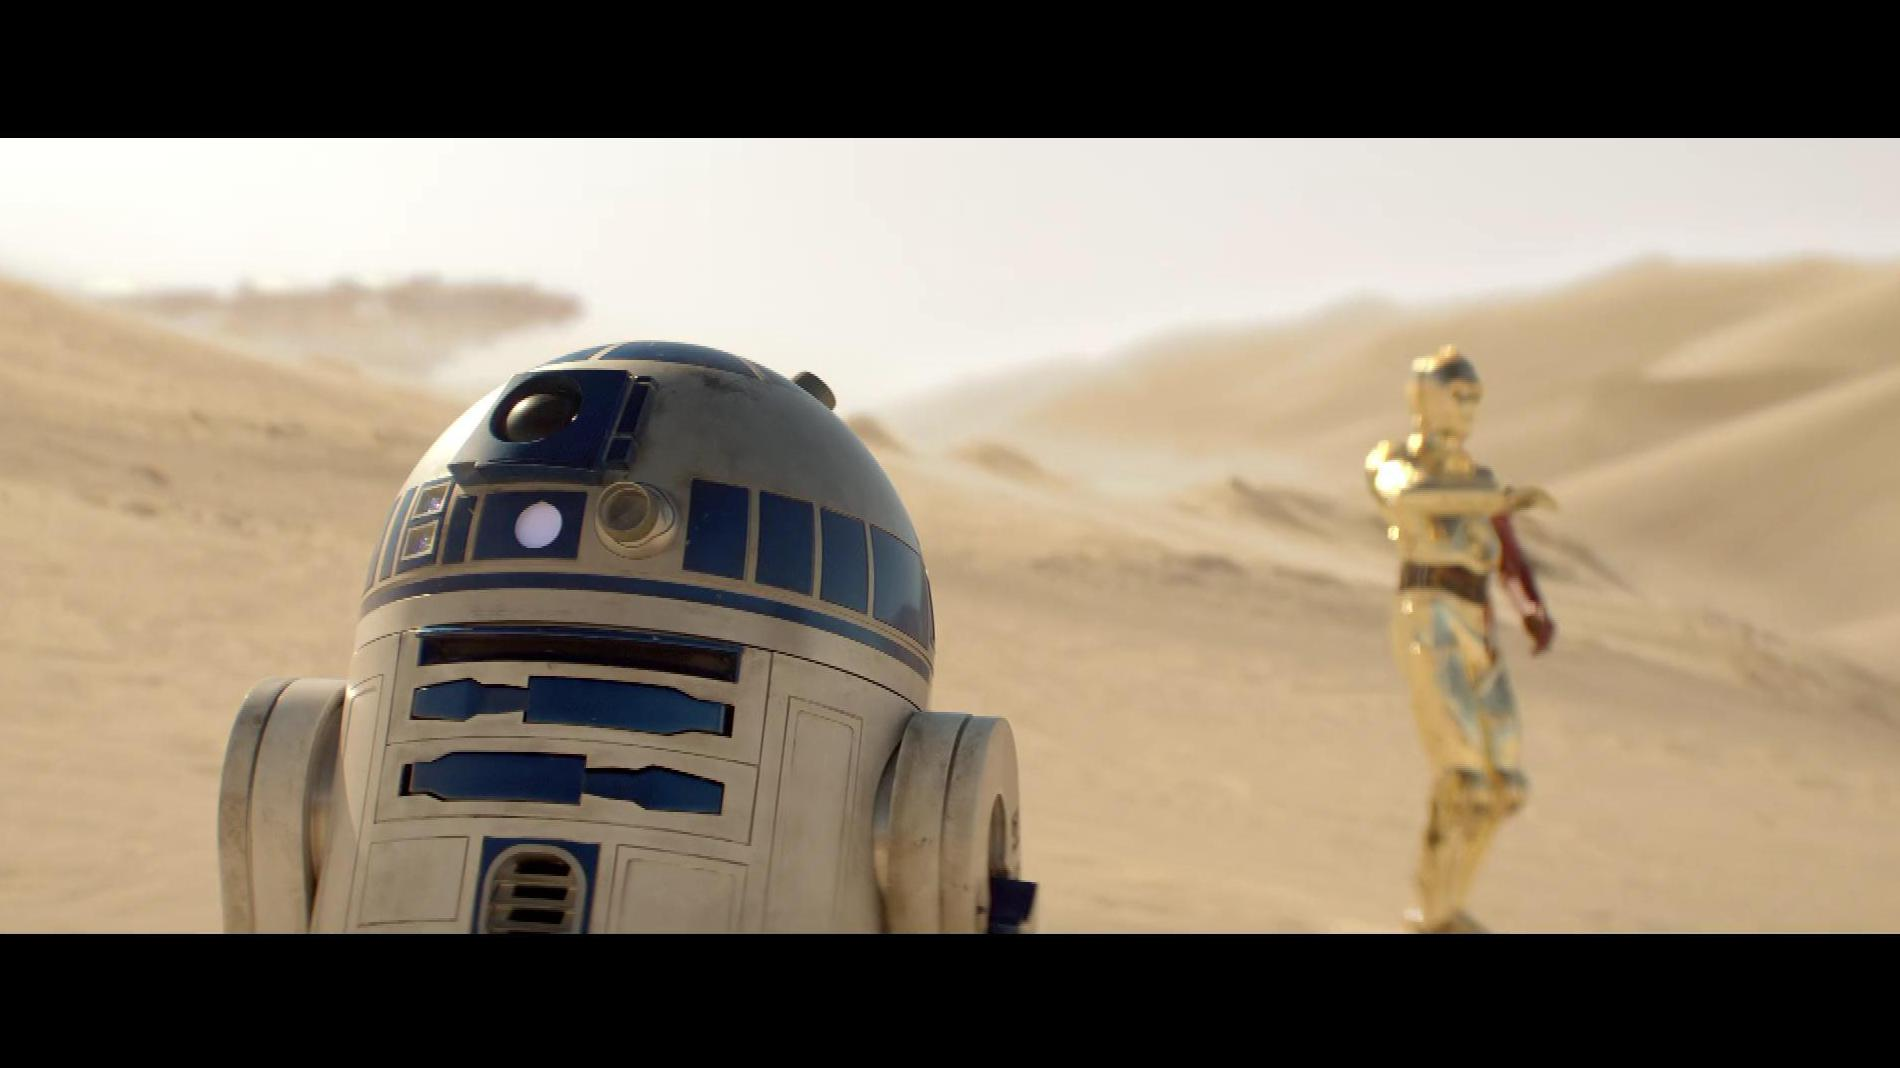 These are the droids you're looking for.